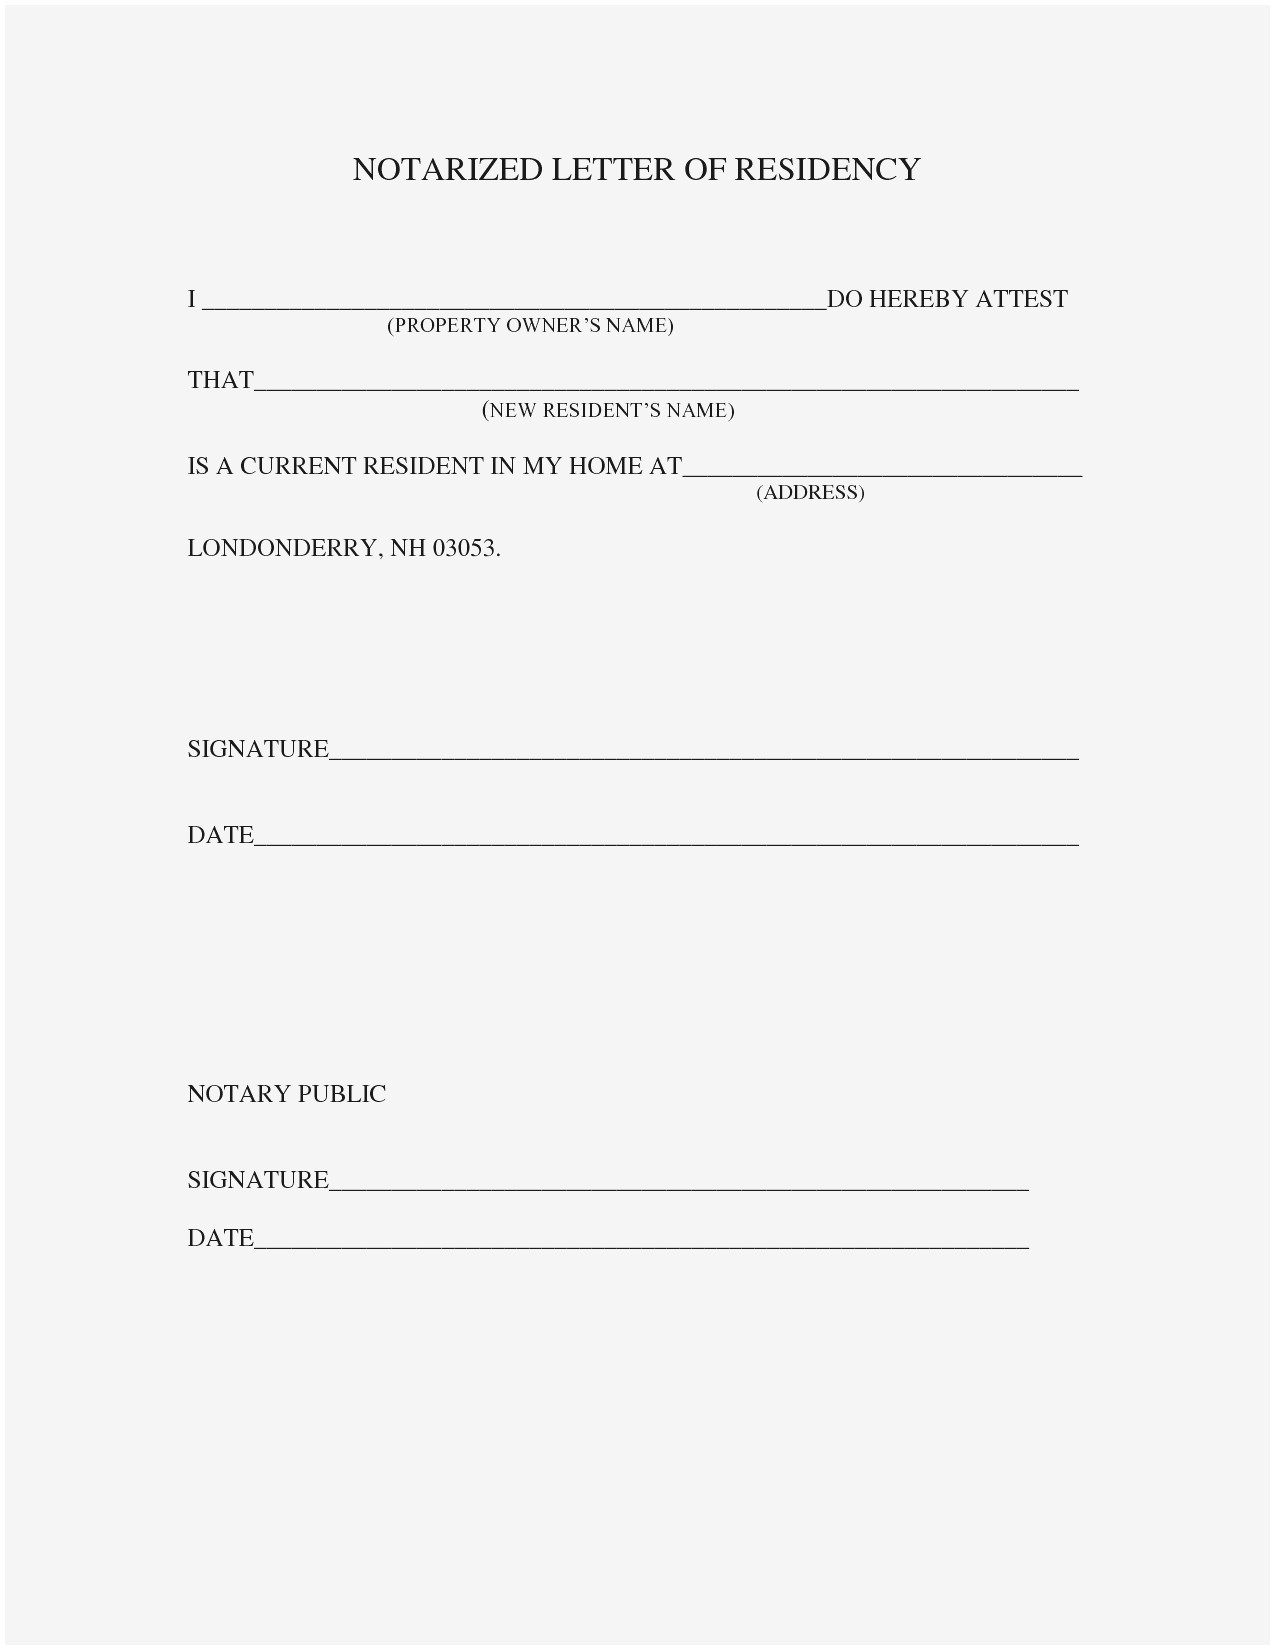 printable notarized letter of residency template Collection-Printable Notarized Letter Residency Template Samples How to Notarize A Letter 11-j